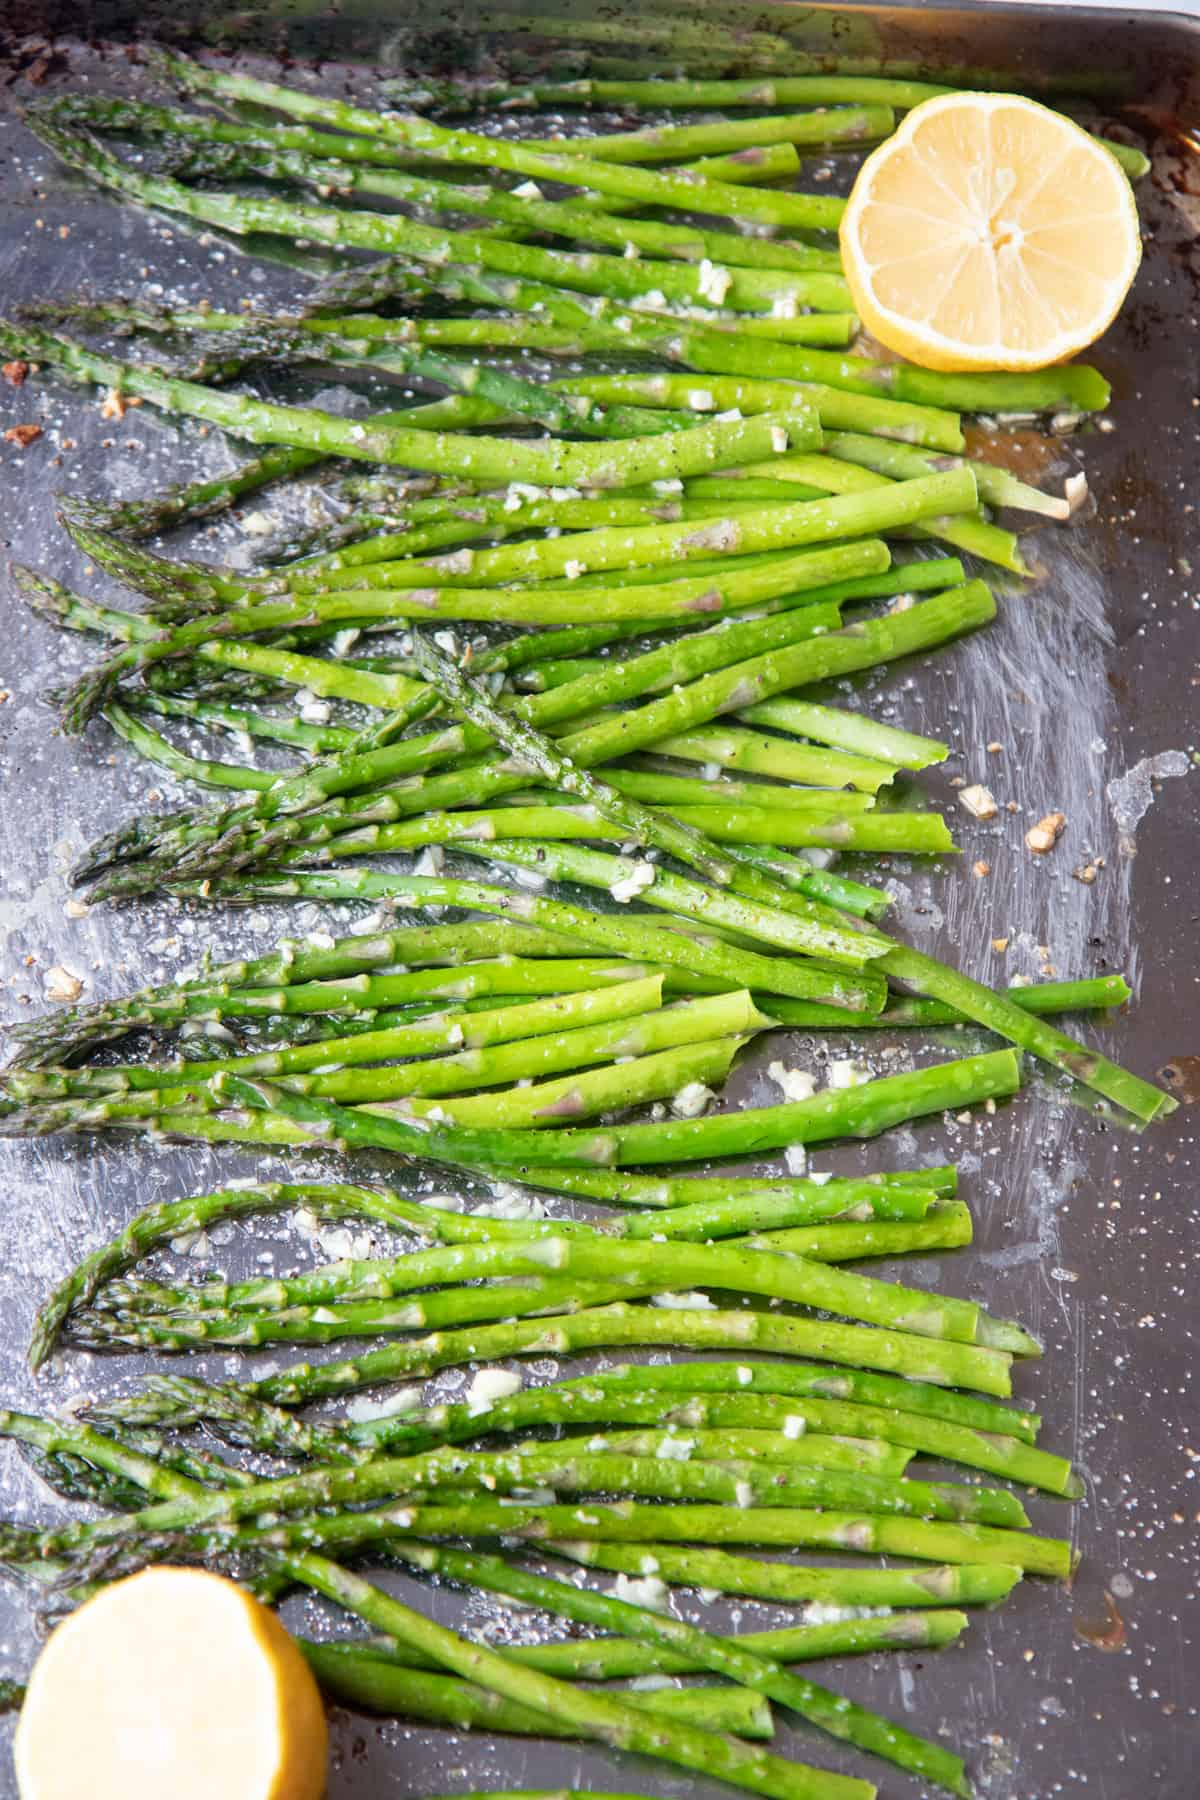 A sheet pan of asparagus, seasoned with garlic and lemon.